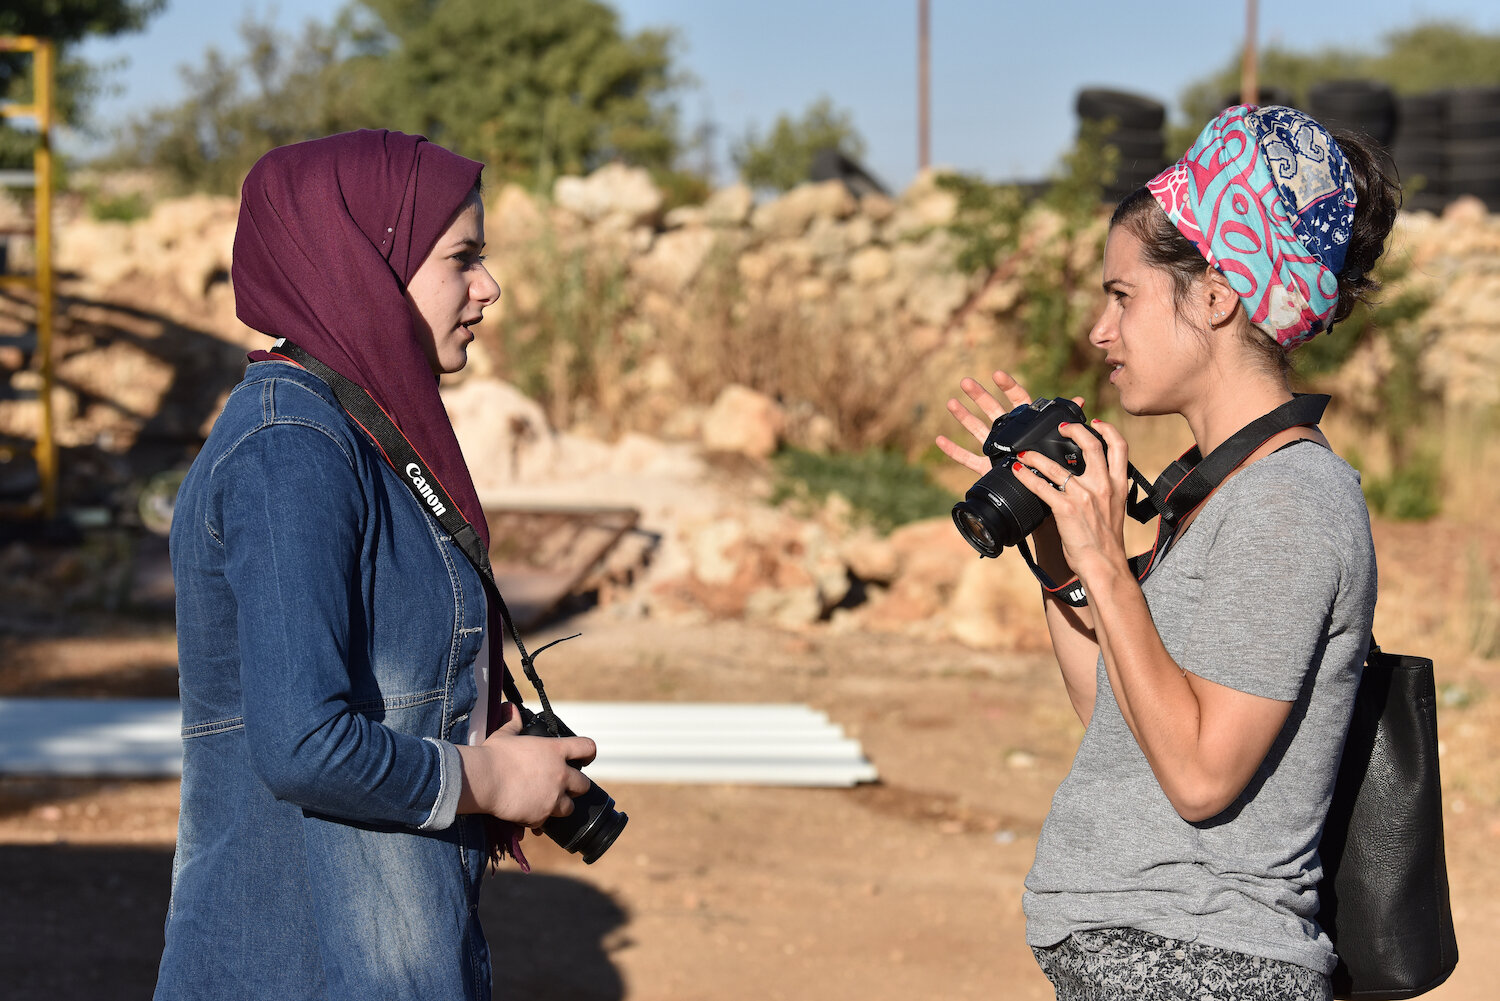 saskia-keeley-photography-humanitarian-photojournalism-documentarian-israel-and-palestine-peace-beyond-sides-towards-reconciliation-roots-non-violence-workshops-DSC_4177.jpg